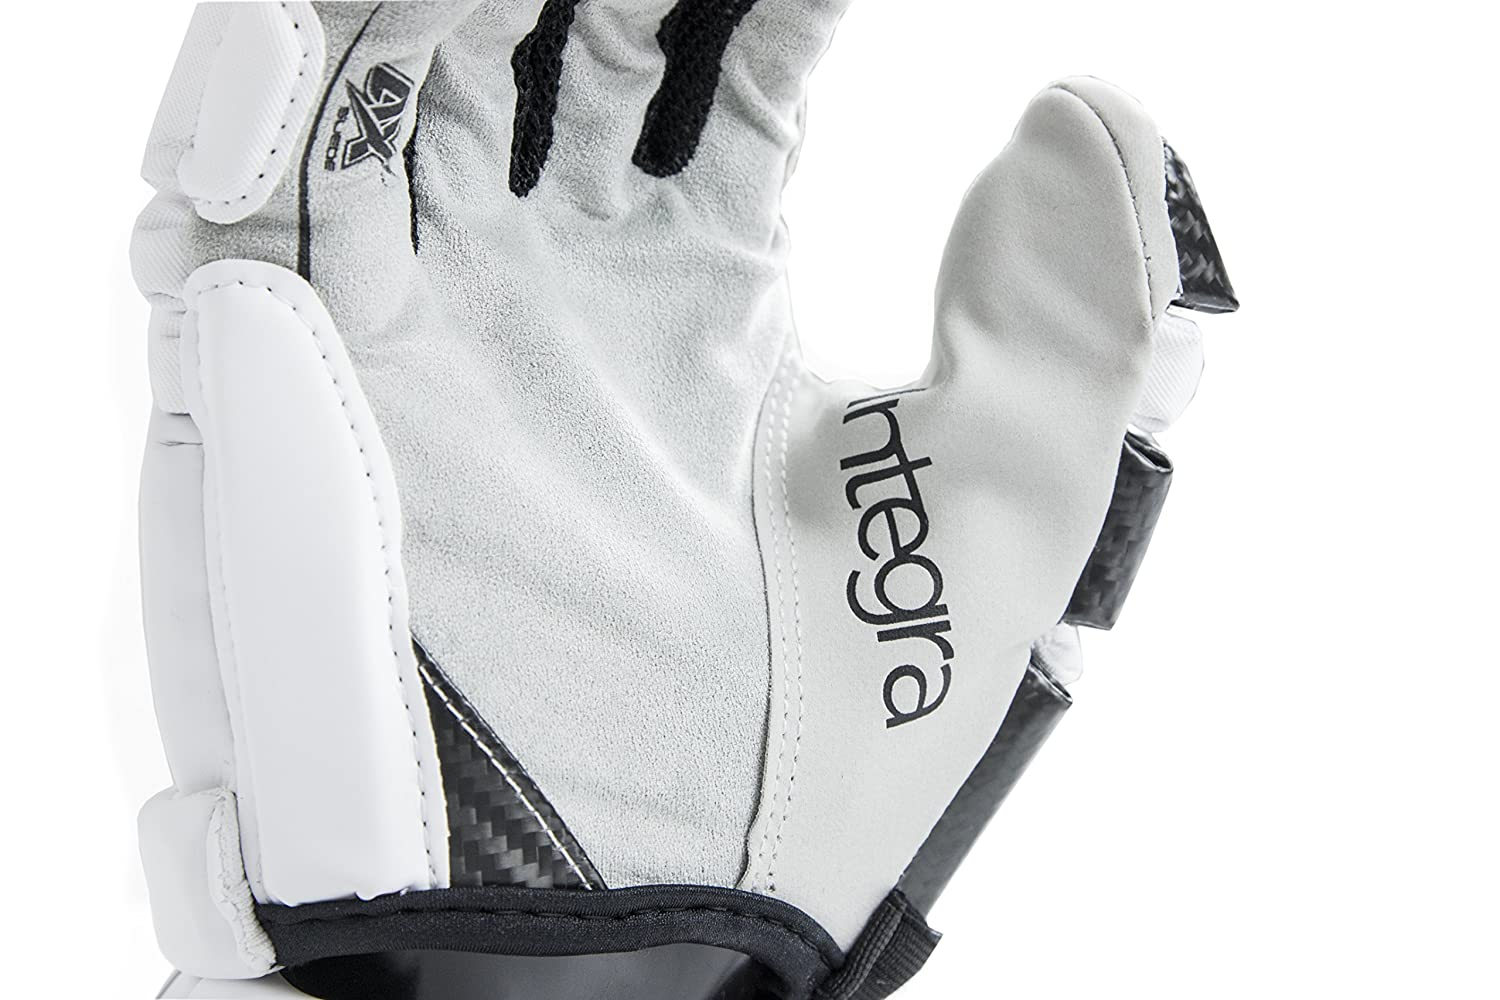 Middie and Defensemen Epoch Lacrosse Integra High Perfomance Lacrosse Gloves with Phase Change Technology Real Carbon Thumb for Attack